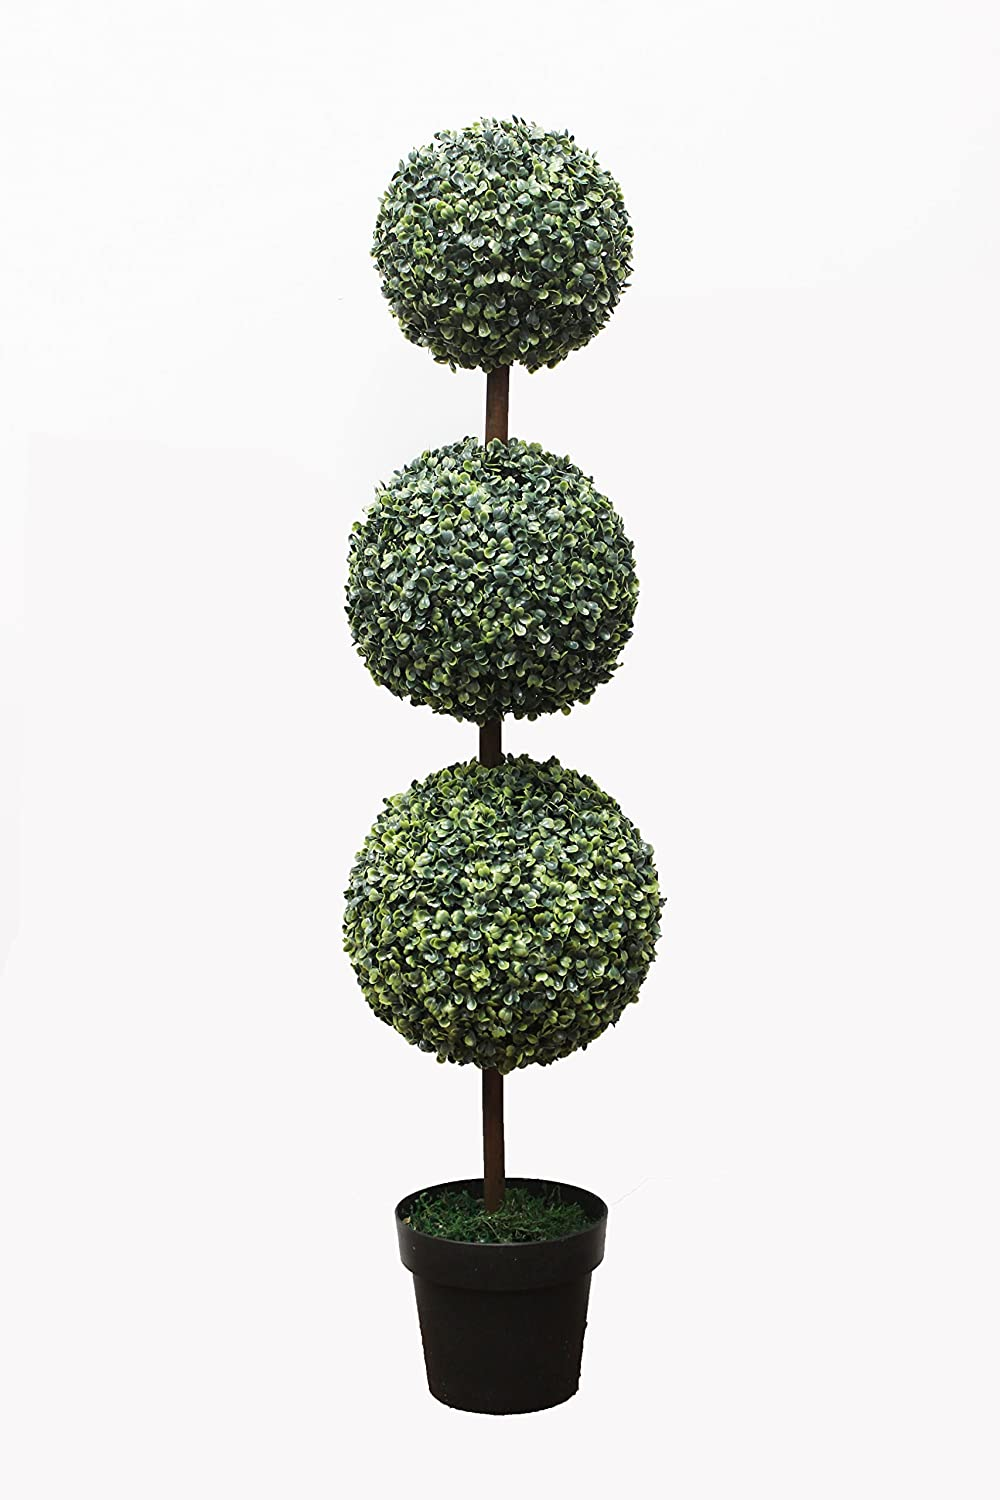 2 X Artificial Trees 3ft Topiary Ball trees Topiary trees